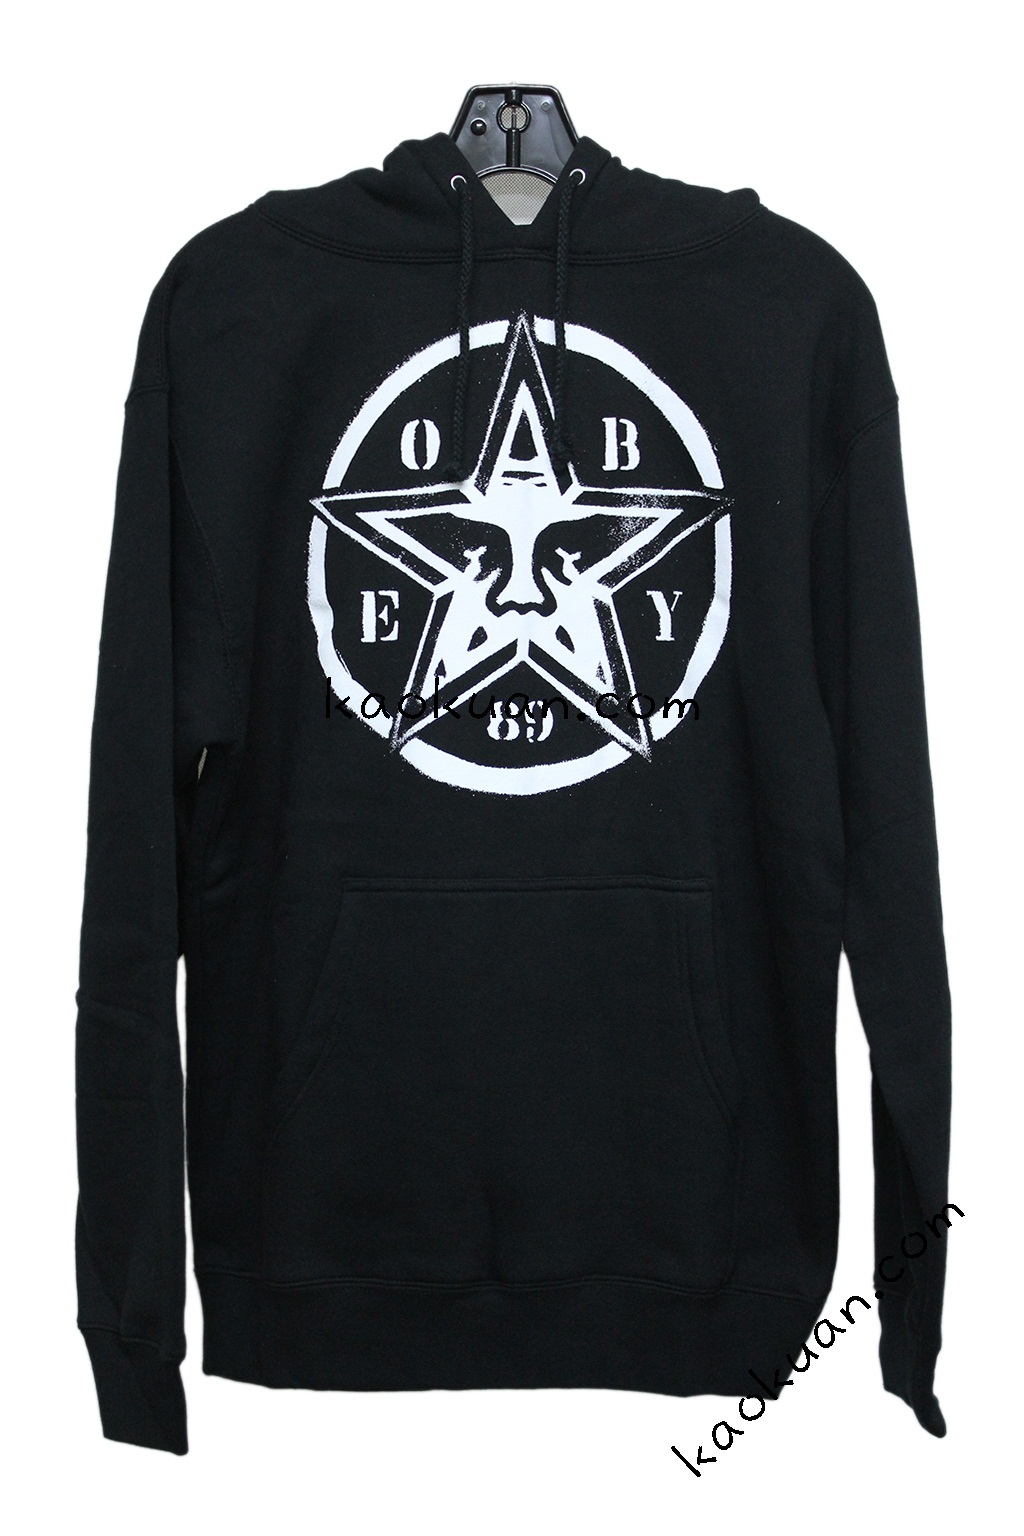 Obey icon basic logo star stencil hoodie 黑 帽 Tee